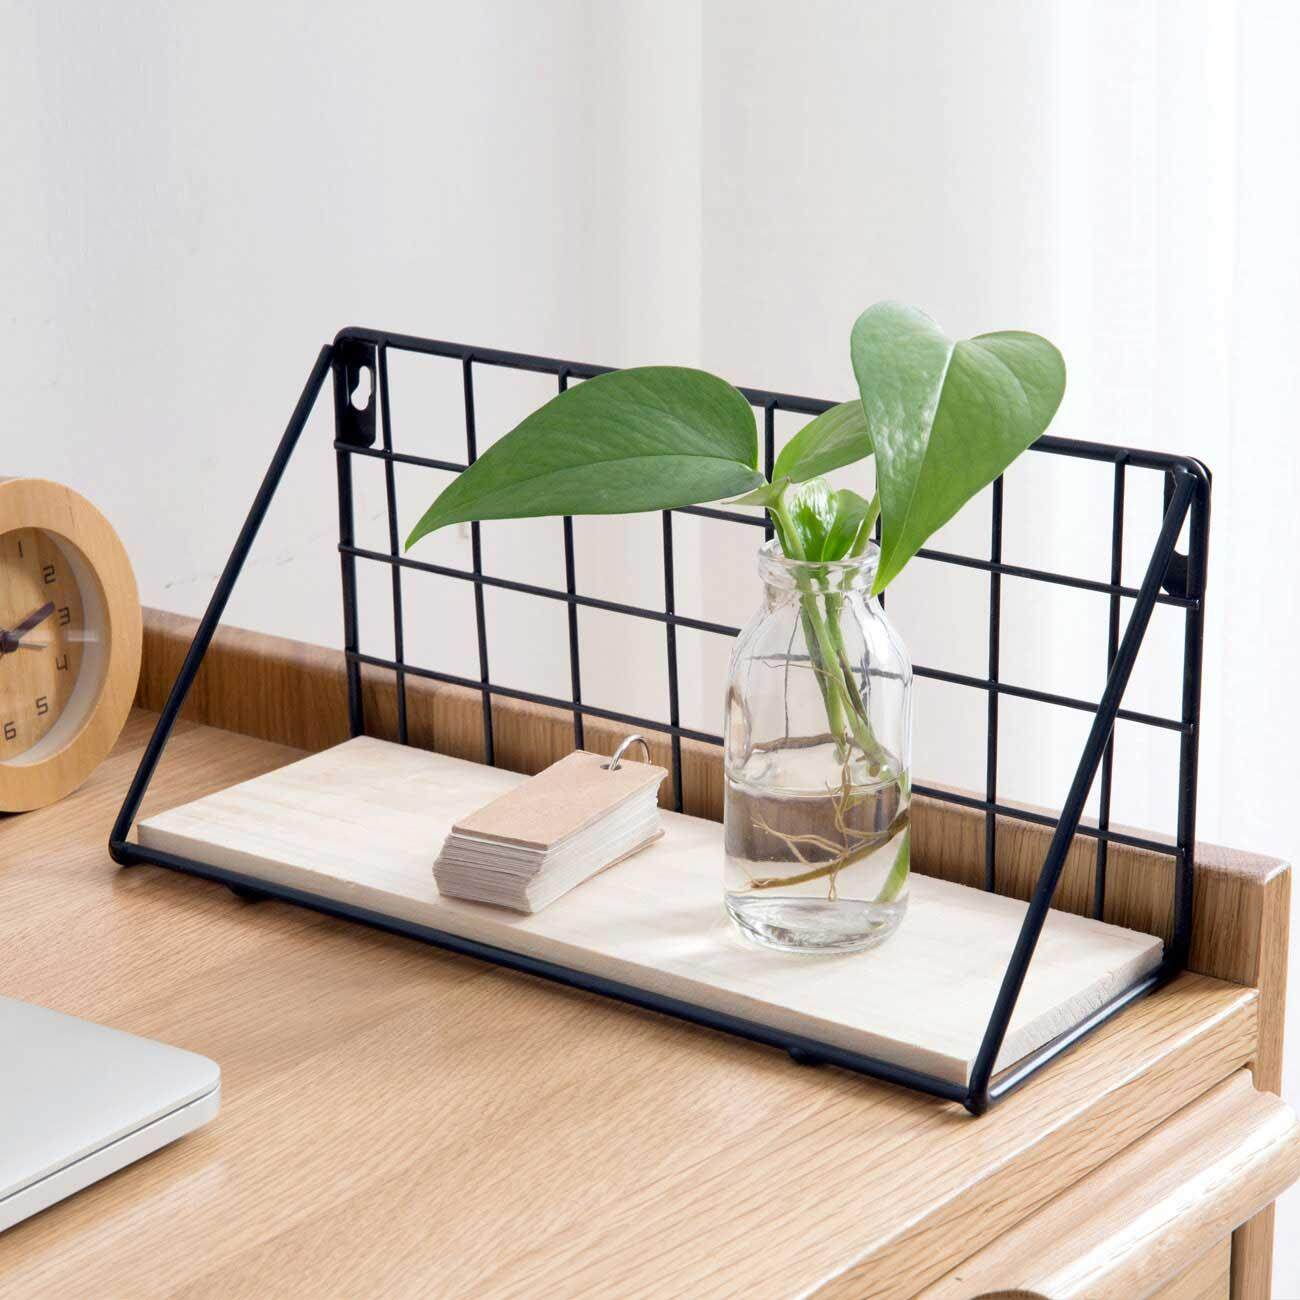 Homenhome Iron Wall hanging Storage Rack Flower Pots DIY Home Decoration